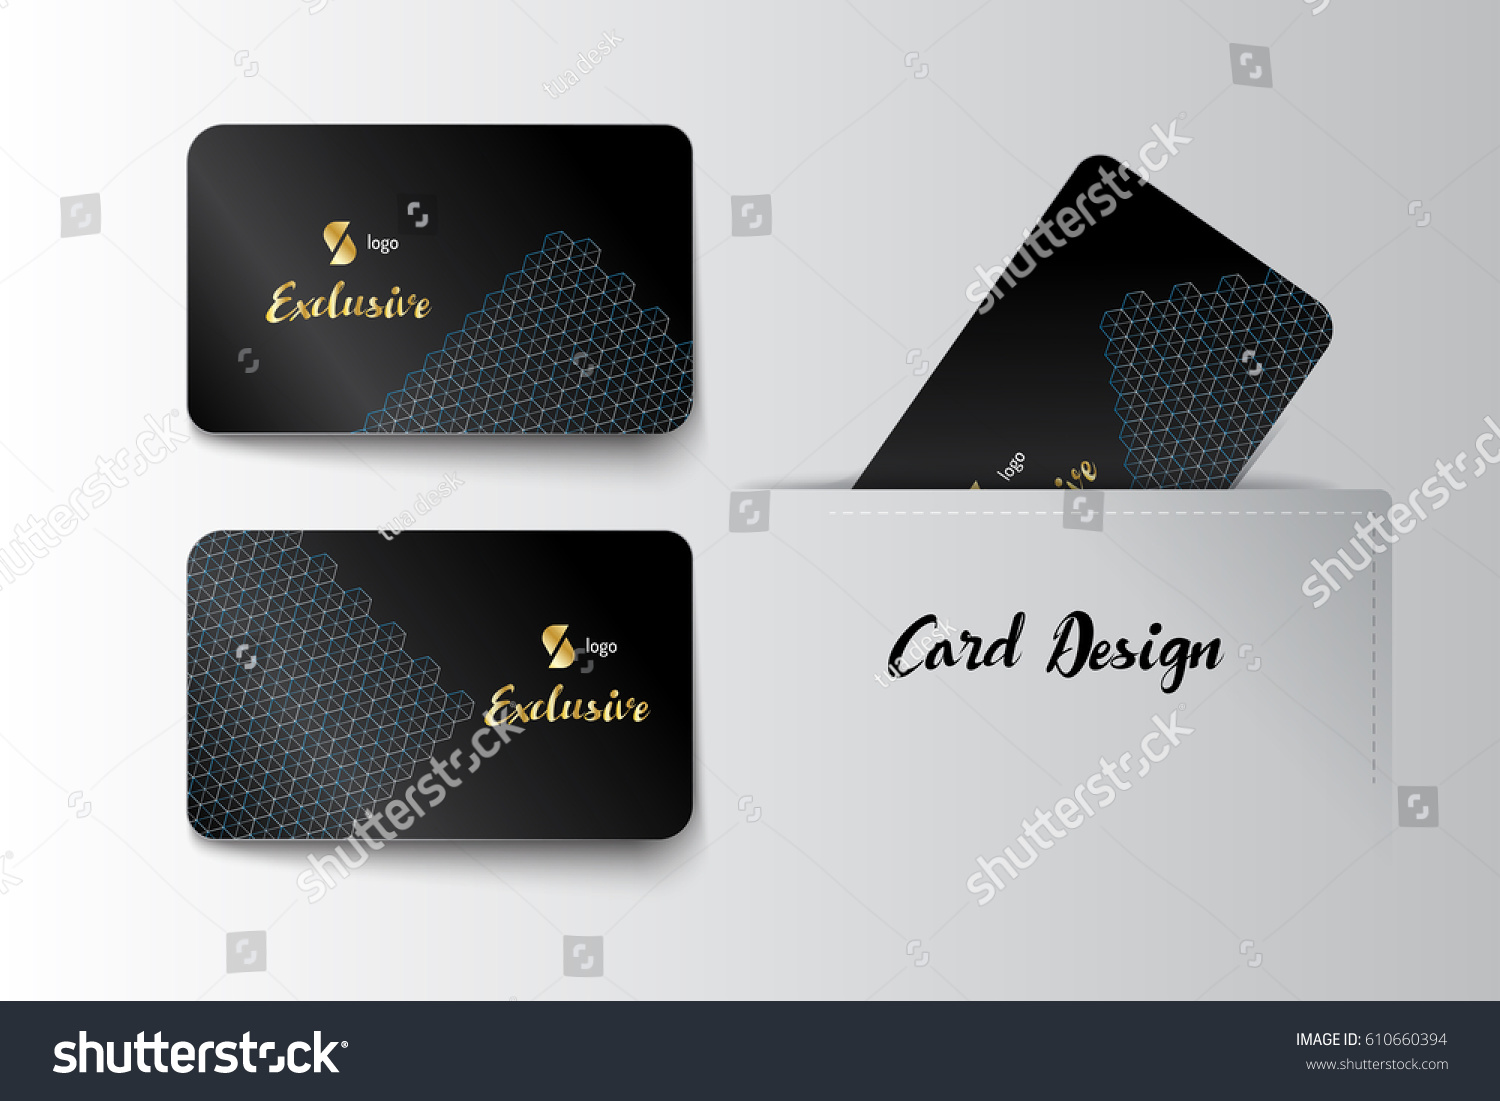 Member VIP Business Card Template Design Stock Vector 610660394 ...